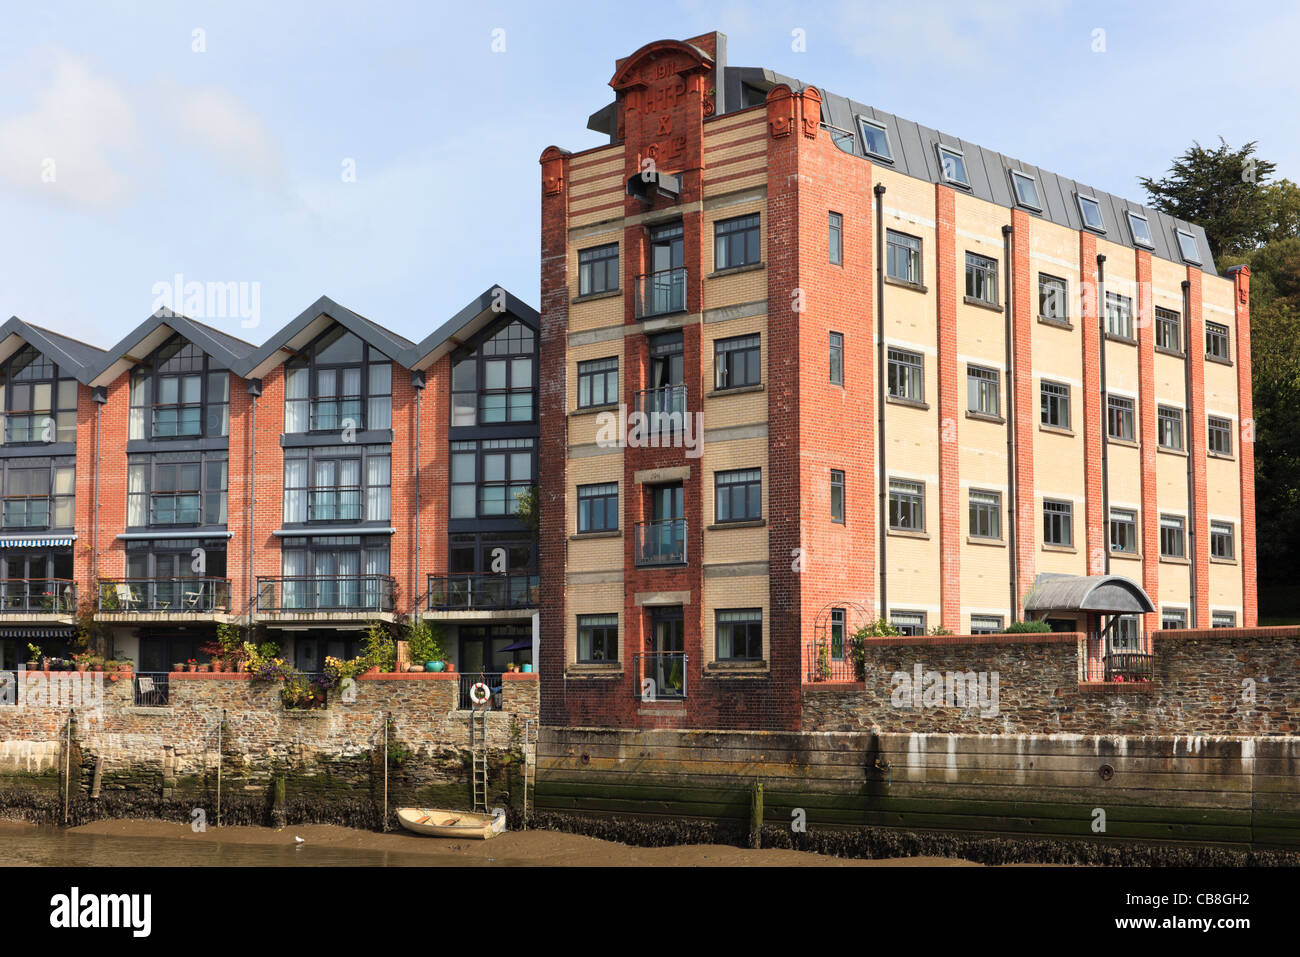 Old Warehouse Building Converted Into Modern Riverside Apartments In Truro,  Cornwall, England, UK, Great Britain.